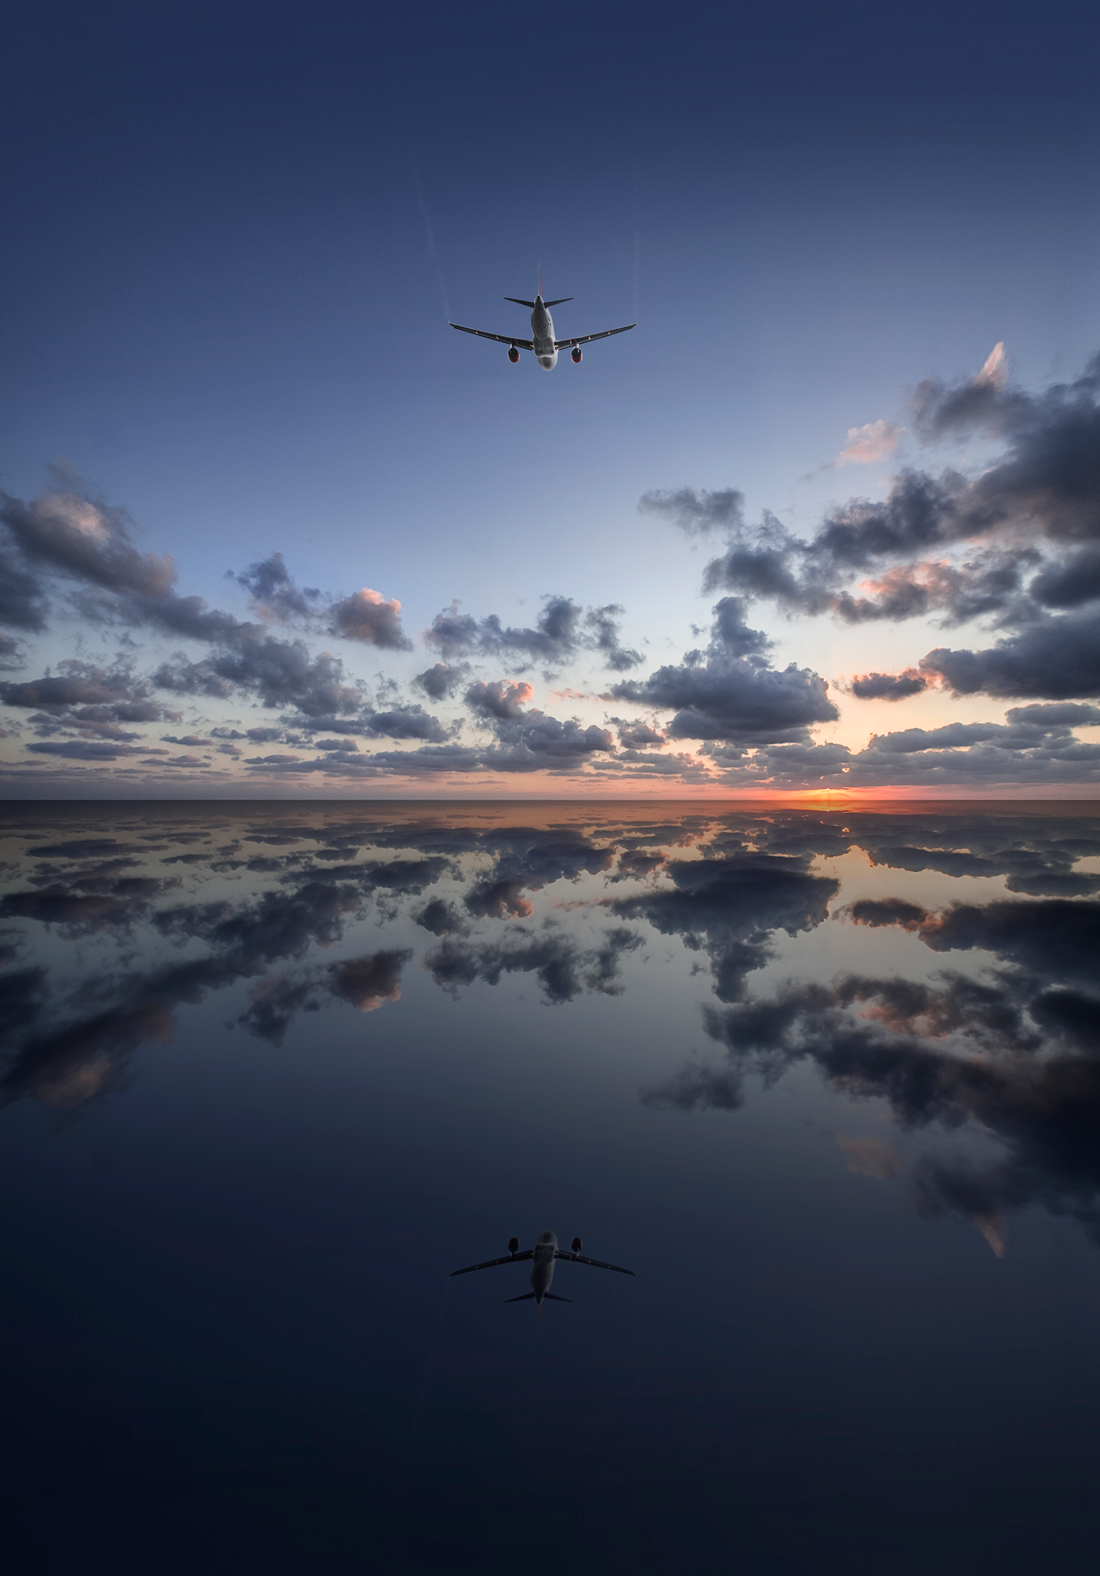 airliner over the sea, aircraft photography, aviation photography, commercial photography, tim wallace